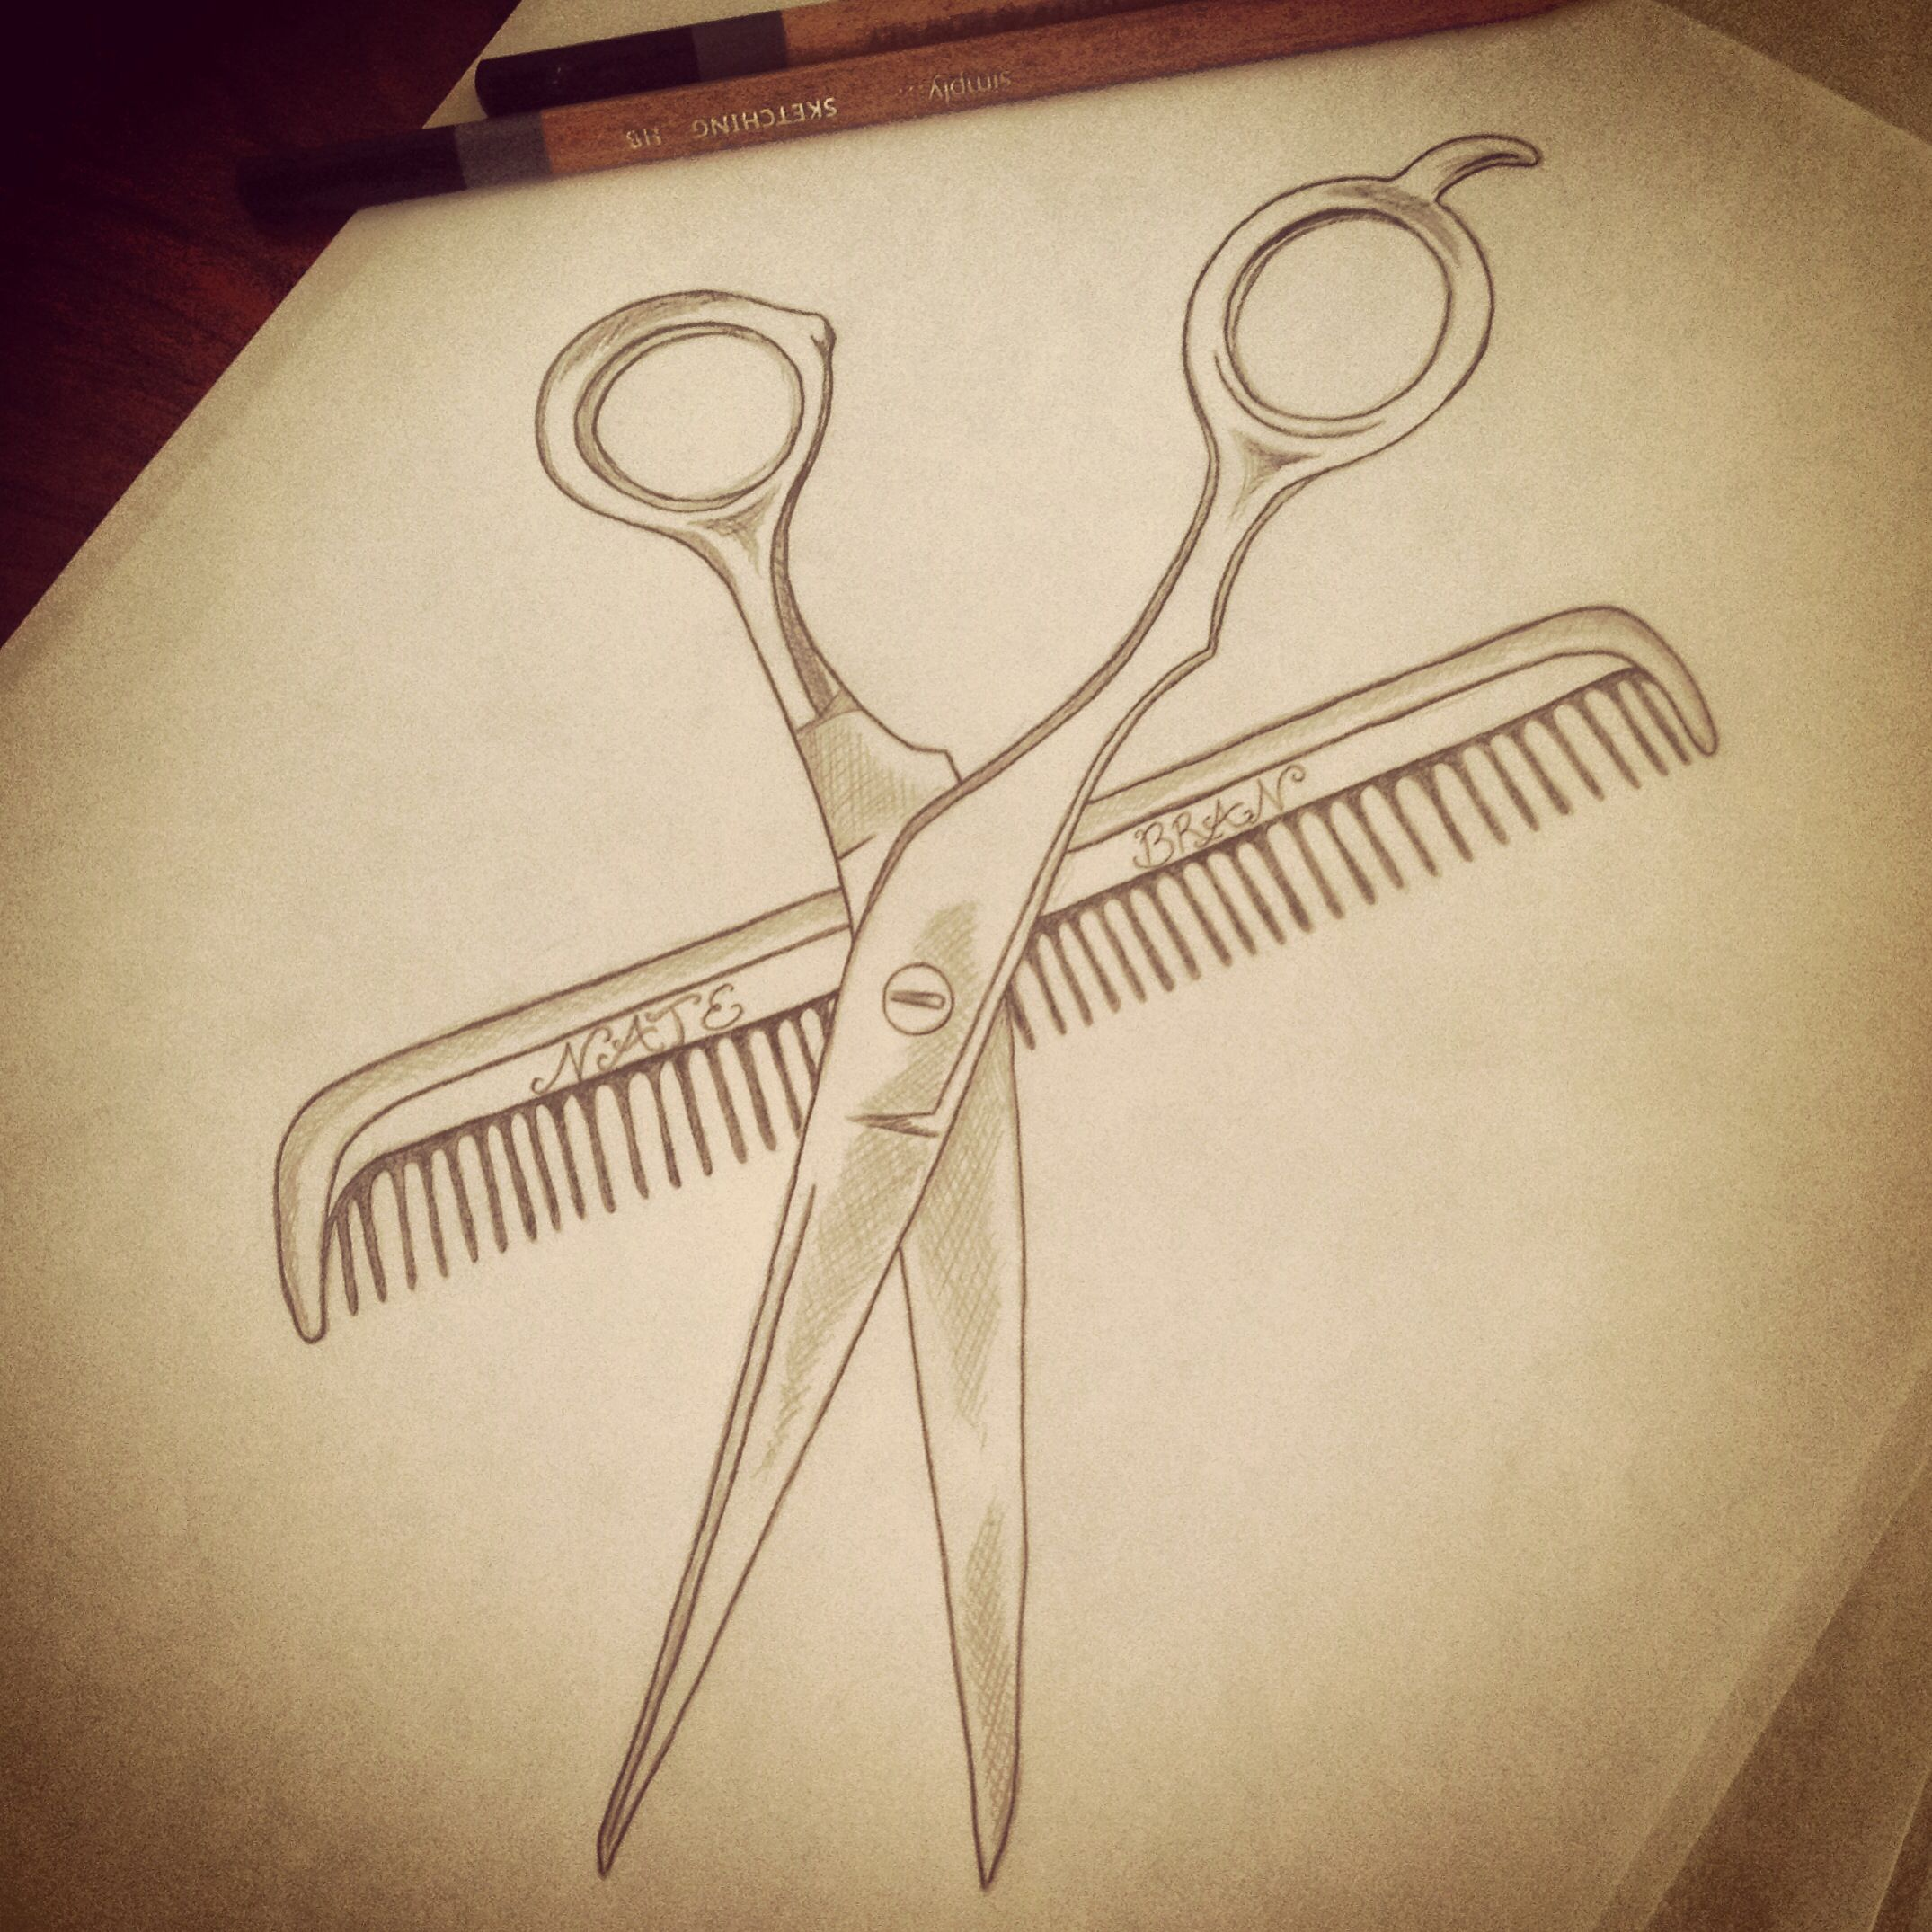 Hairstylist Shears Comb Couples Scissors Scissors Drawing Hairdresser Tattoos Cute Paintings